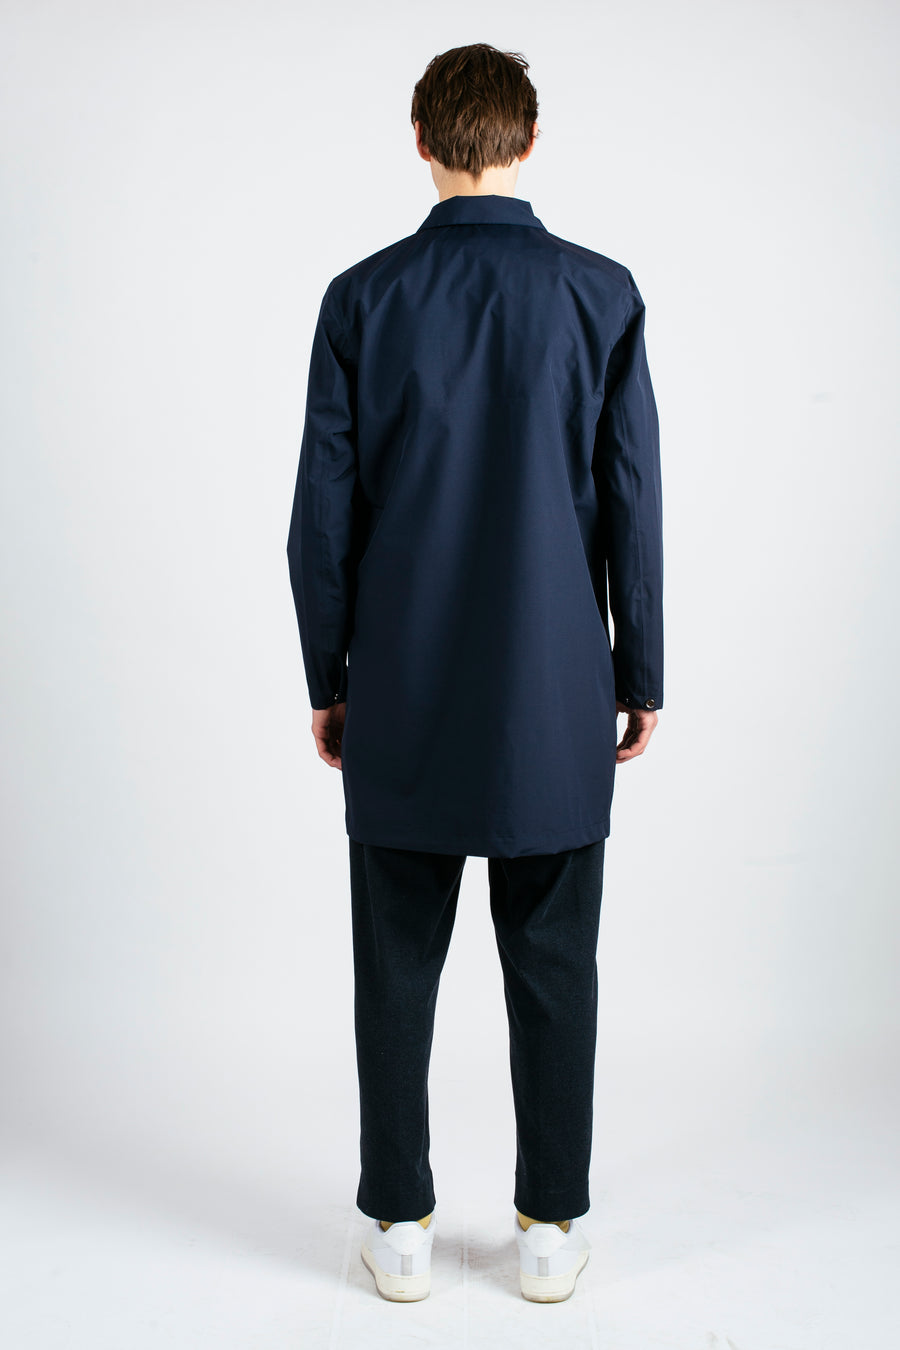 Long Dong Navy UNISEX